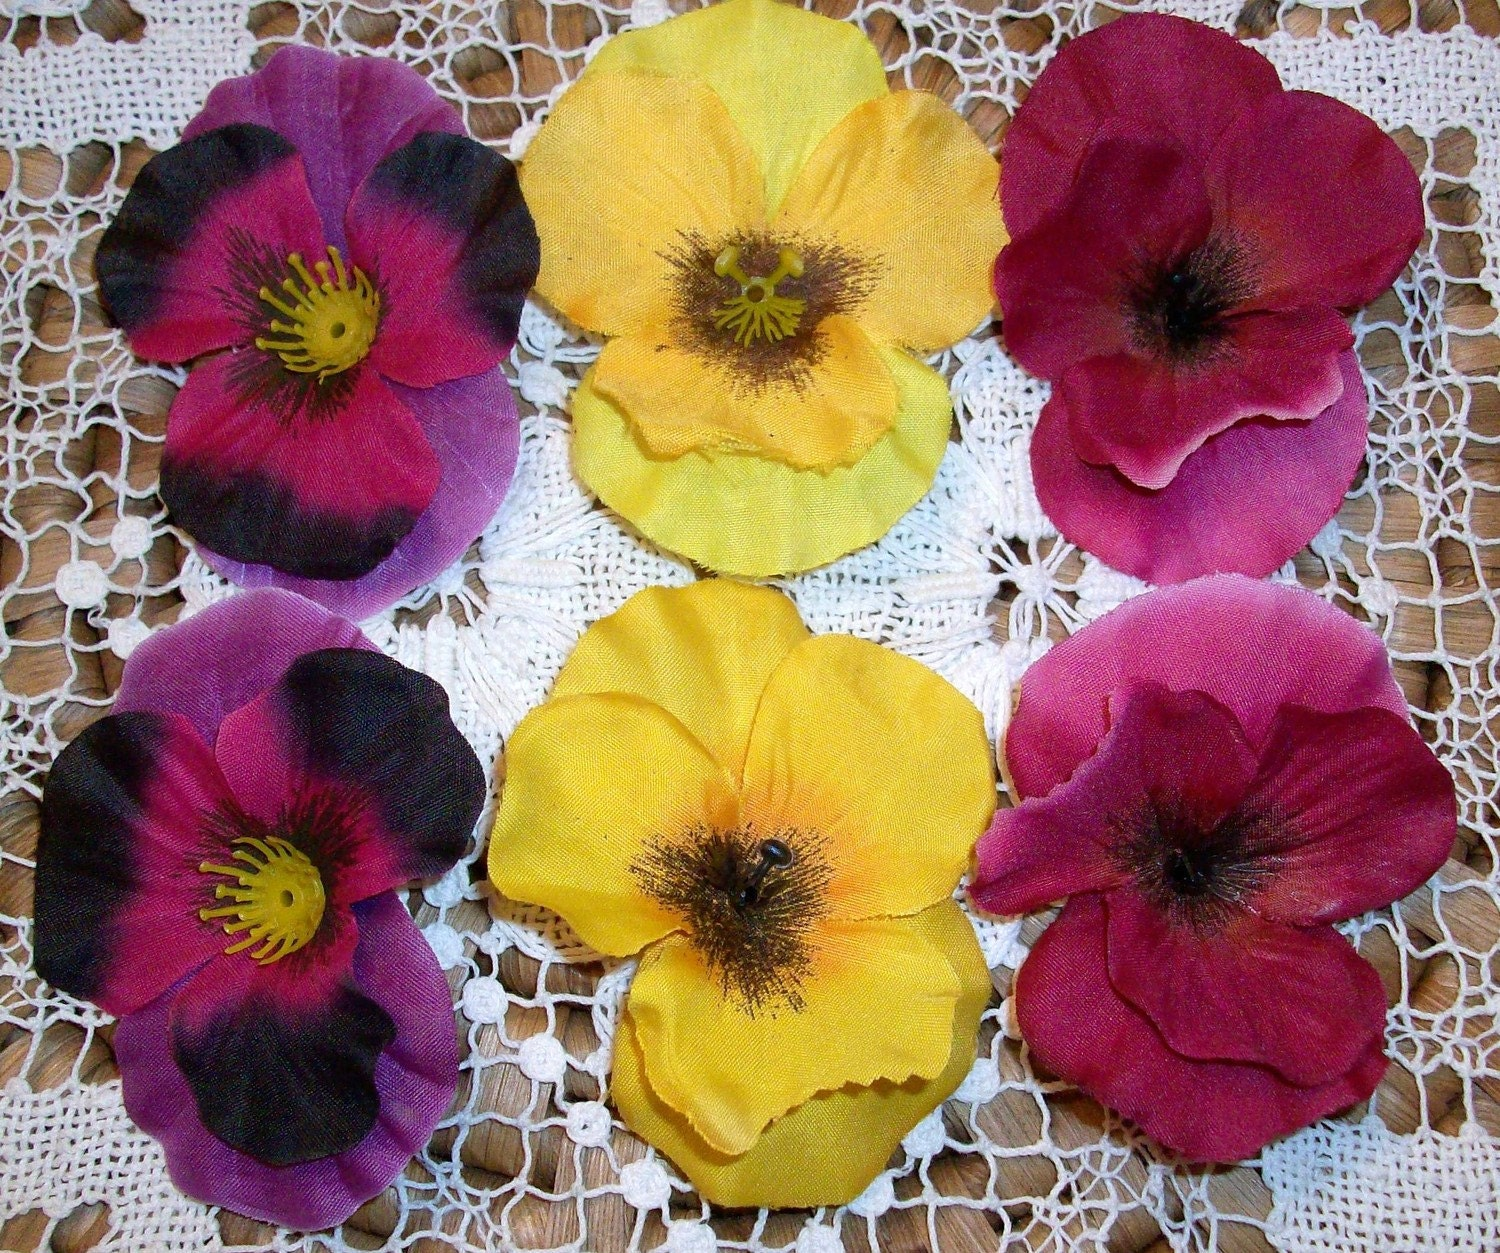 6 PC WHOLESALE LOT OF SILK PANSY FLOWER HEADS by VintageShindigz